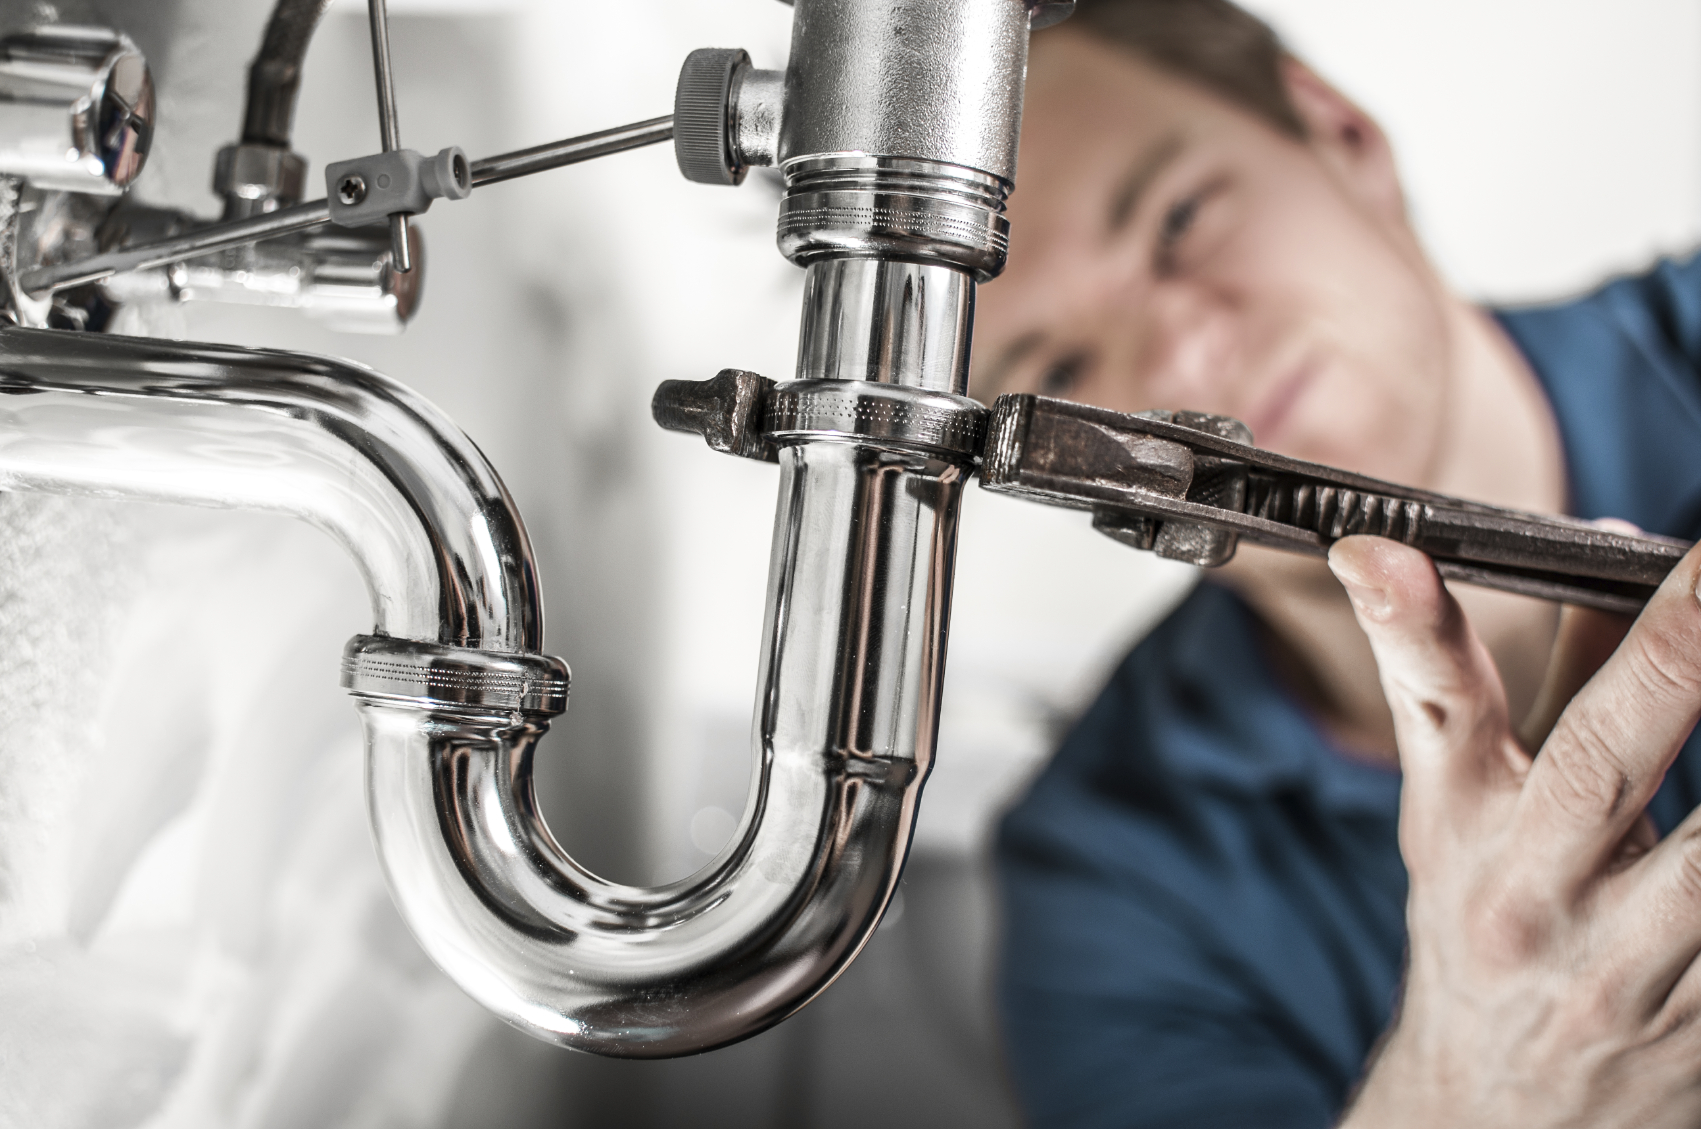 Before Calling for Emergency Plumbing on Your Flooded Toilet